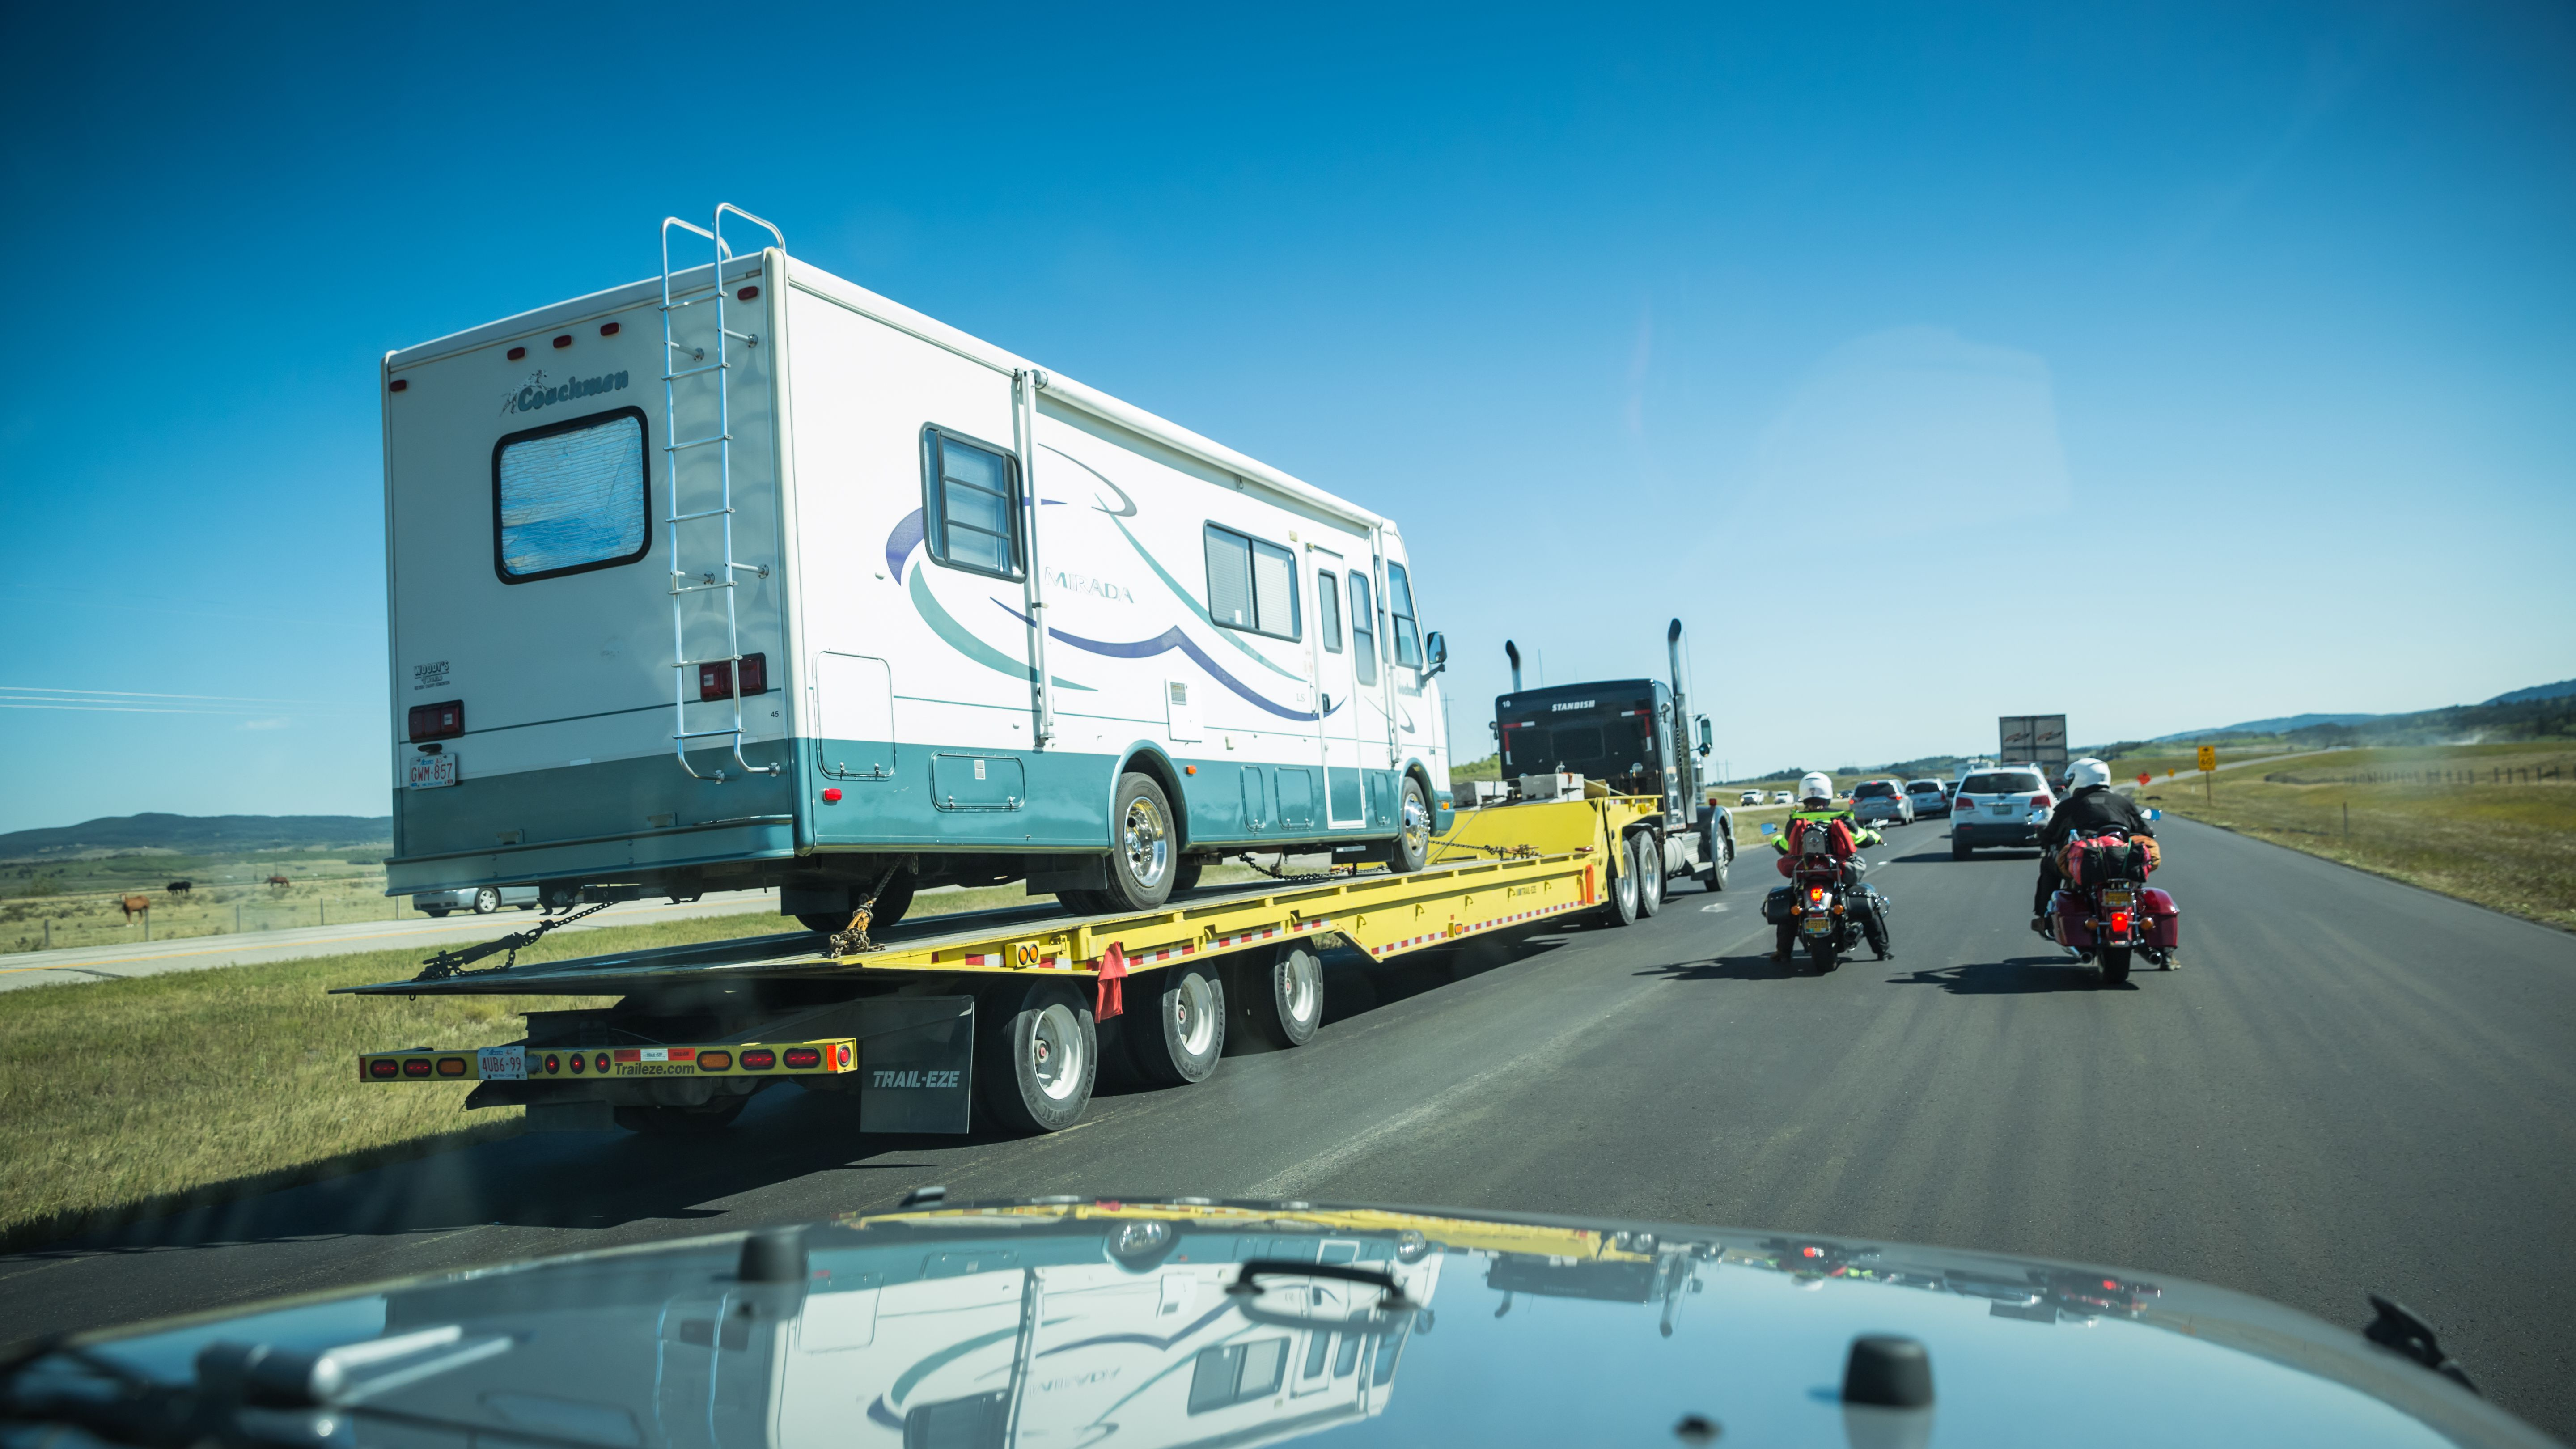 How to Find out If Your RV Has Been Recalled